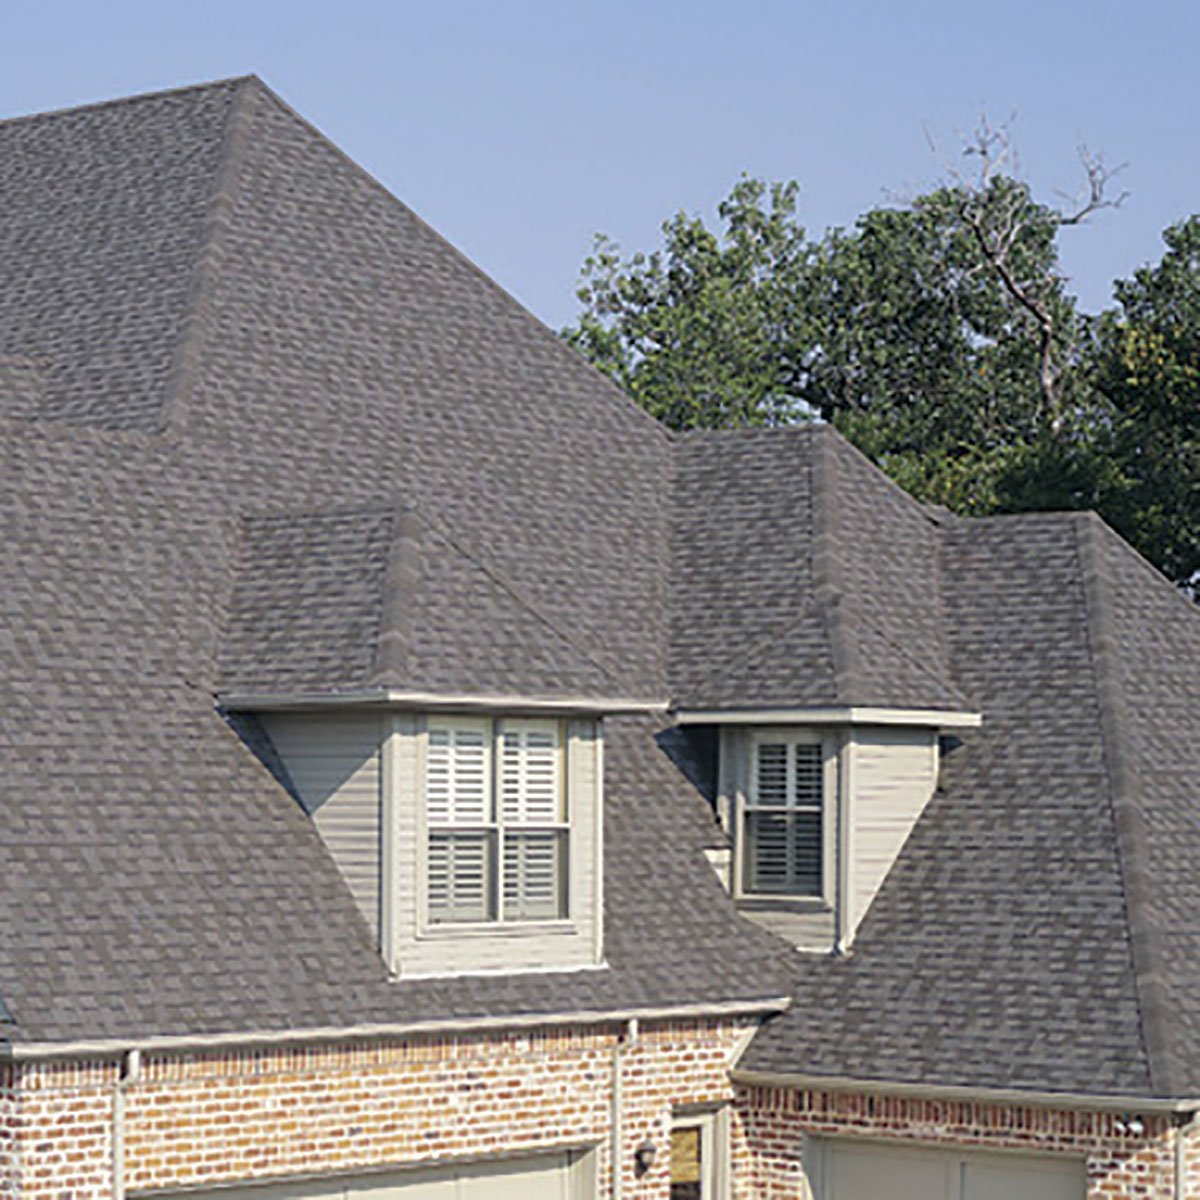 Beautiful Homes Start with Heritage Shingles: Heritage Shingles | Wooden Shim | Heritage Roofing Shingles